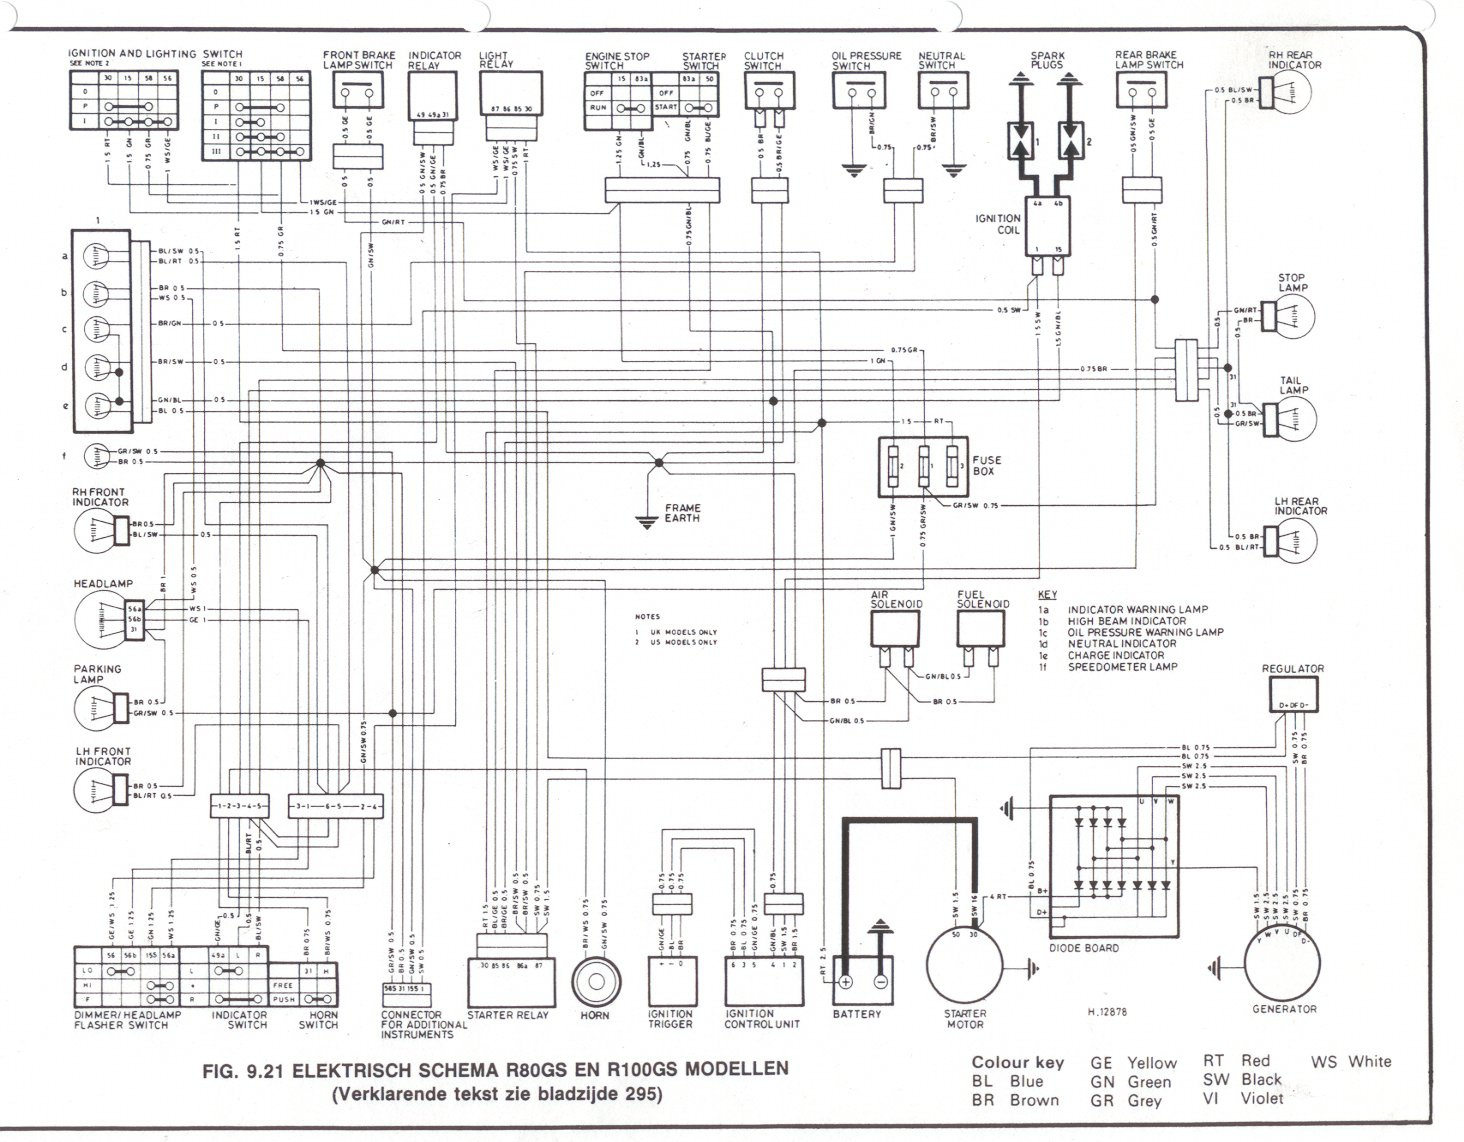 R80 100GS Schematic bmw r100 info thiel org za bmw r100rs gauge wiring diagram at crackthecode.co